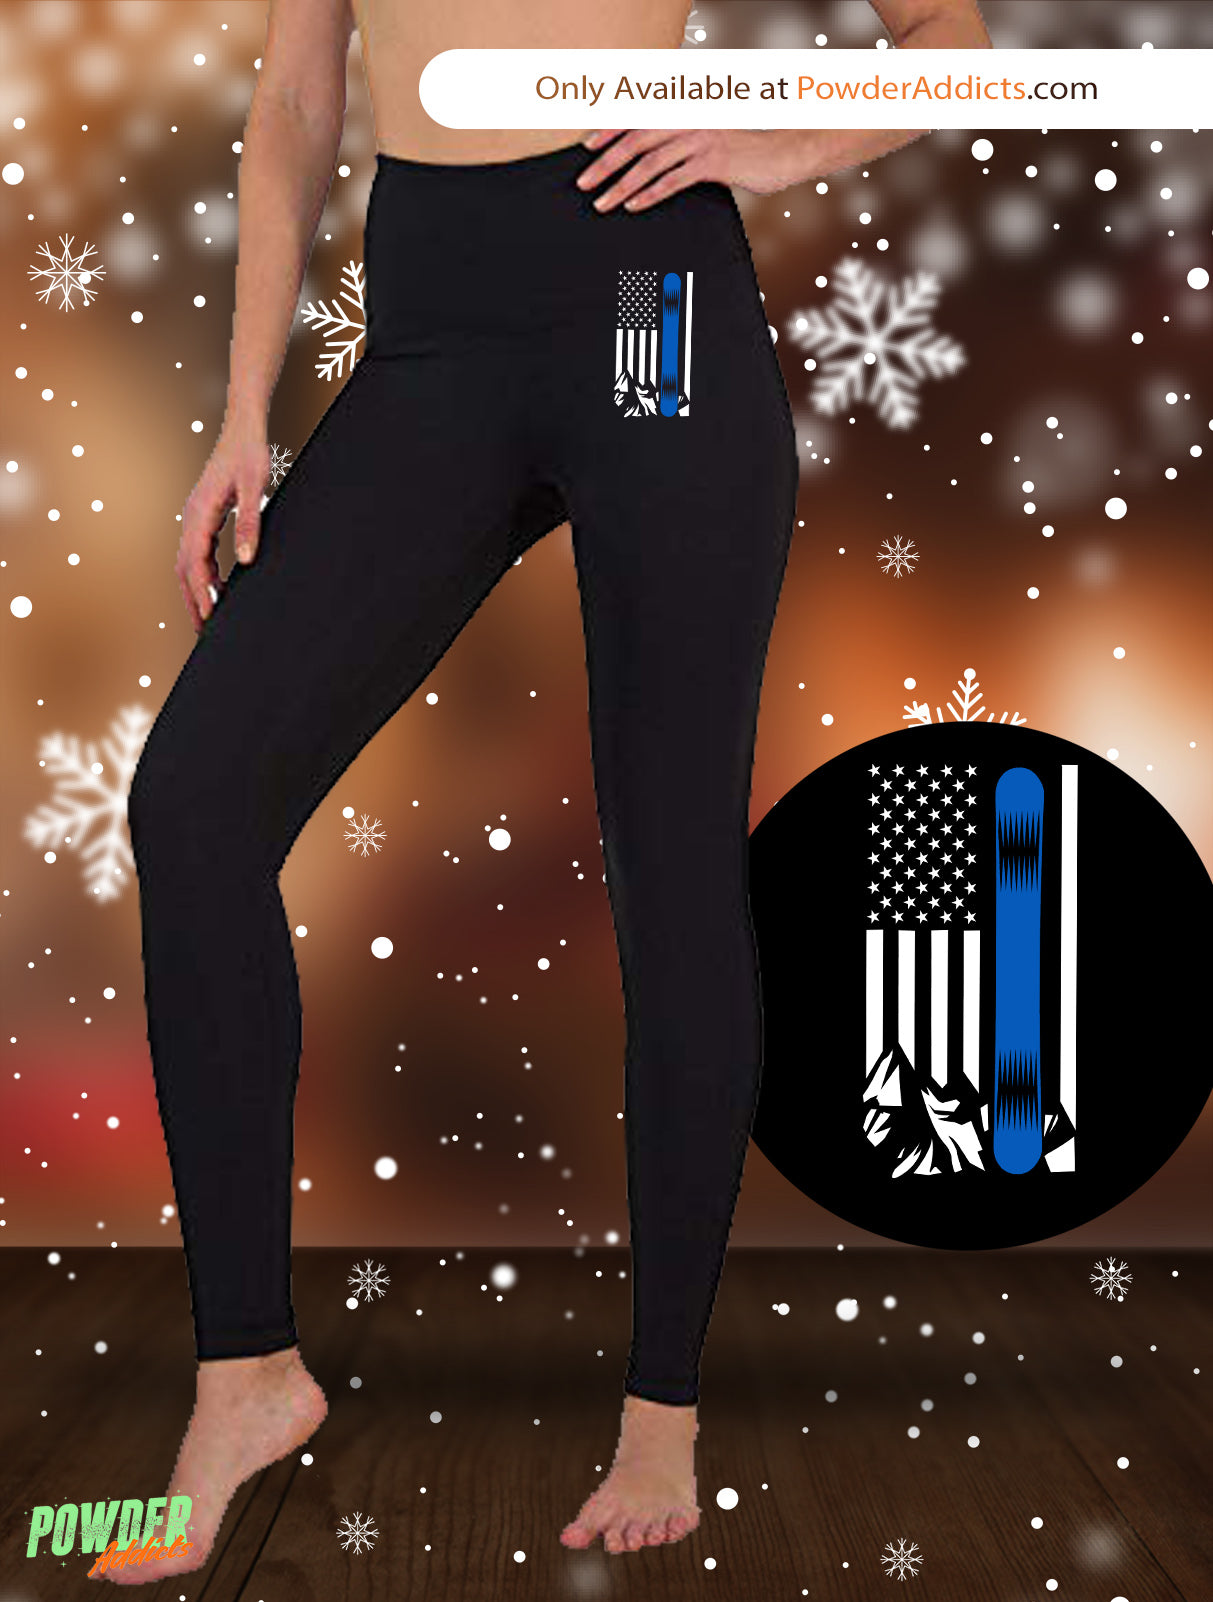 USA Snowboard Flag Thin Blue Line Women's Embroidered Leggings - Powderaddicts